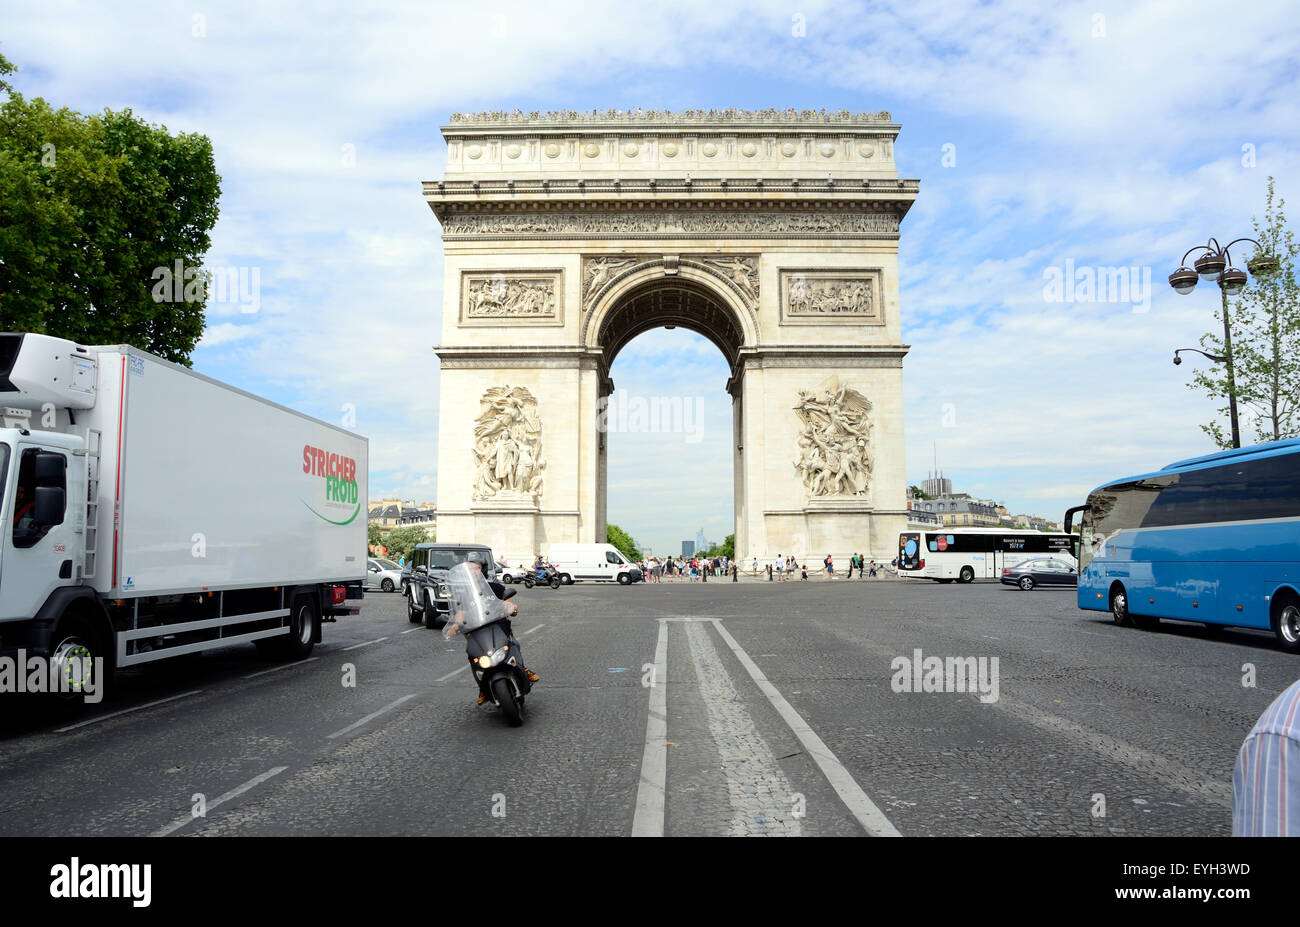 A view of the Arc de Triomphe in Paris. - Stock Image